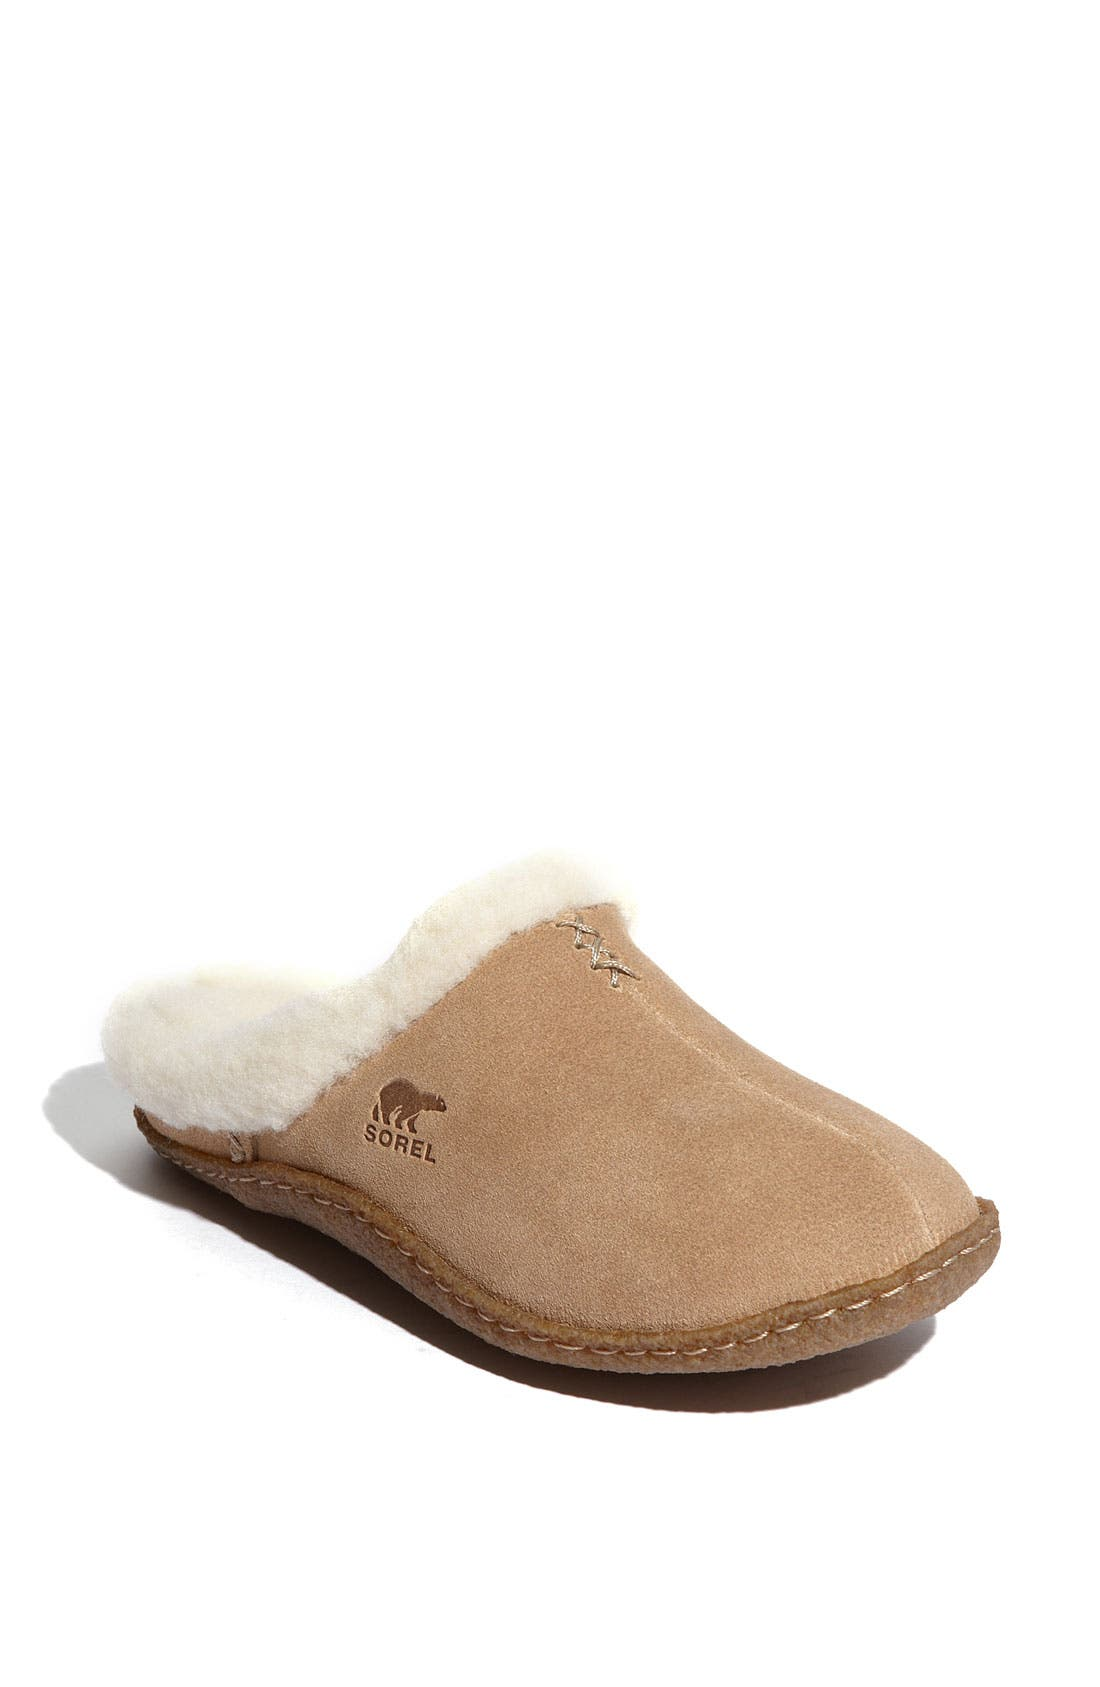 Alternate Image 1 Selected - SOREL 'Nakiska' Slipper